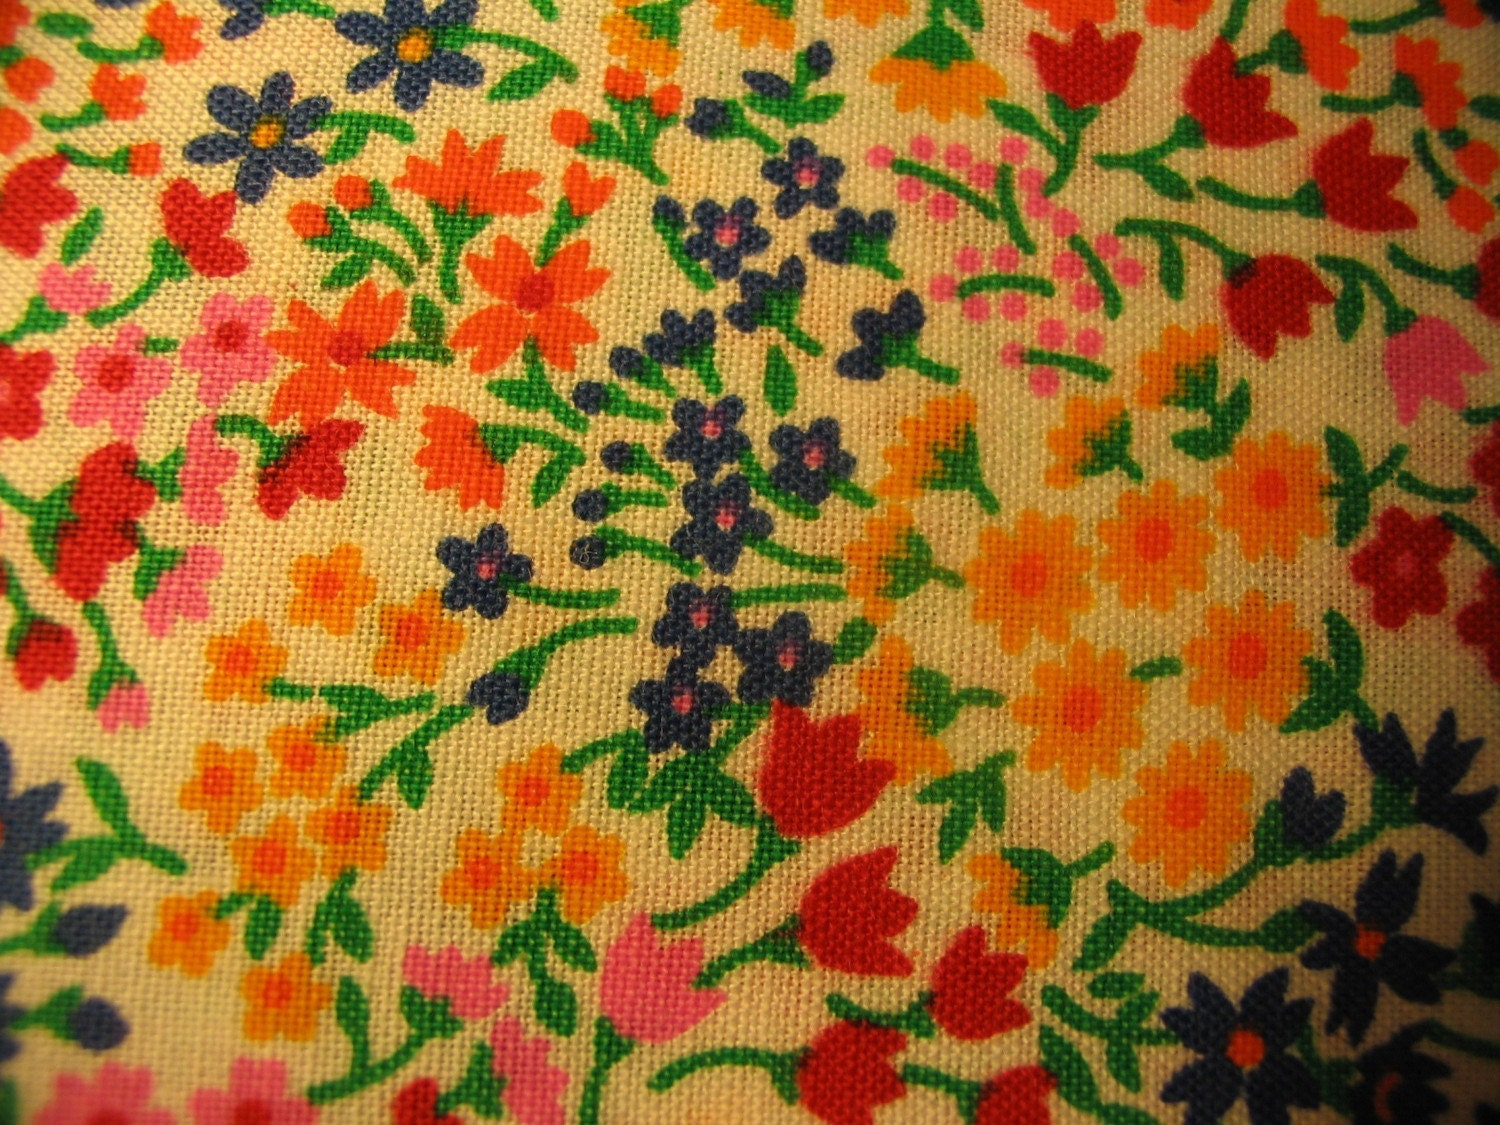 Vintage 1970s 1960s Calico Quilt Fabric Multi Colored flowers 18 inches 45.7 Centimeters